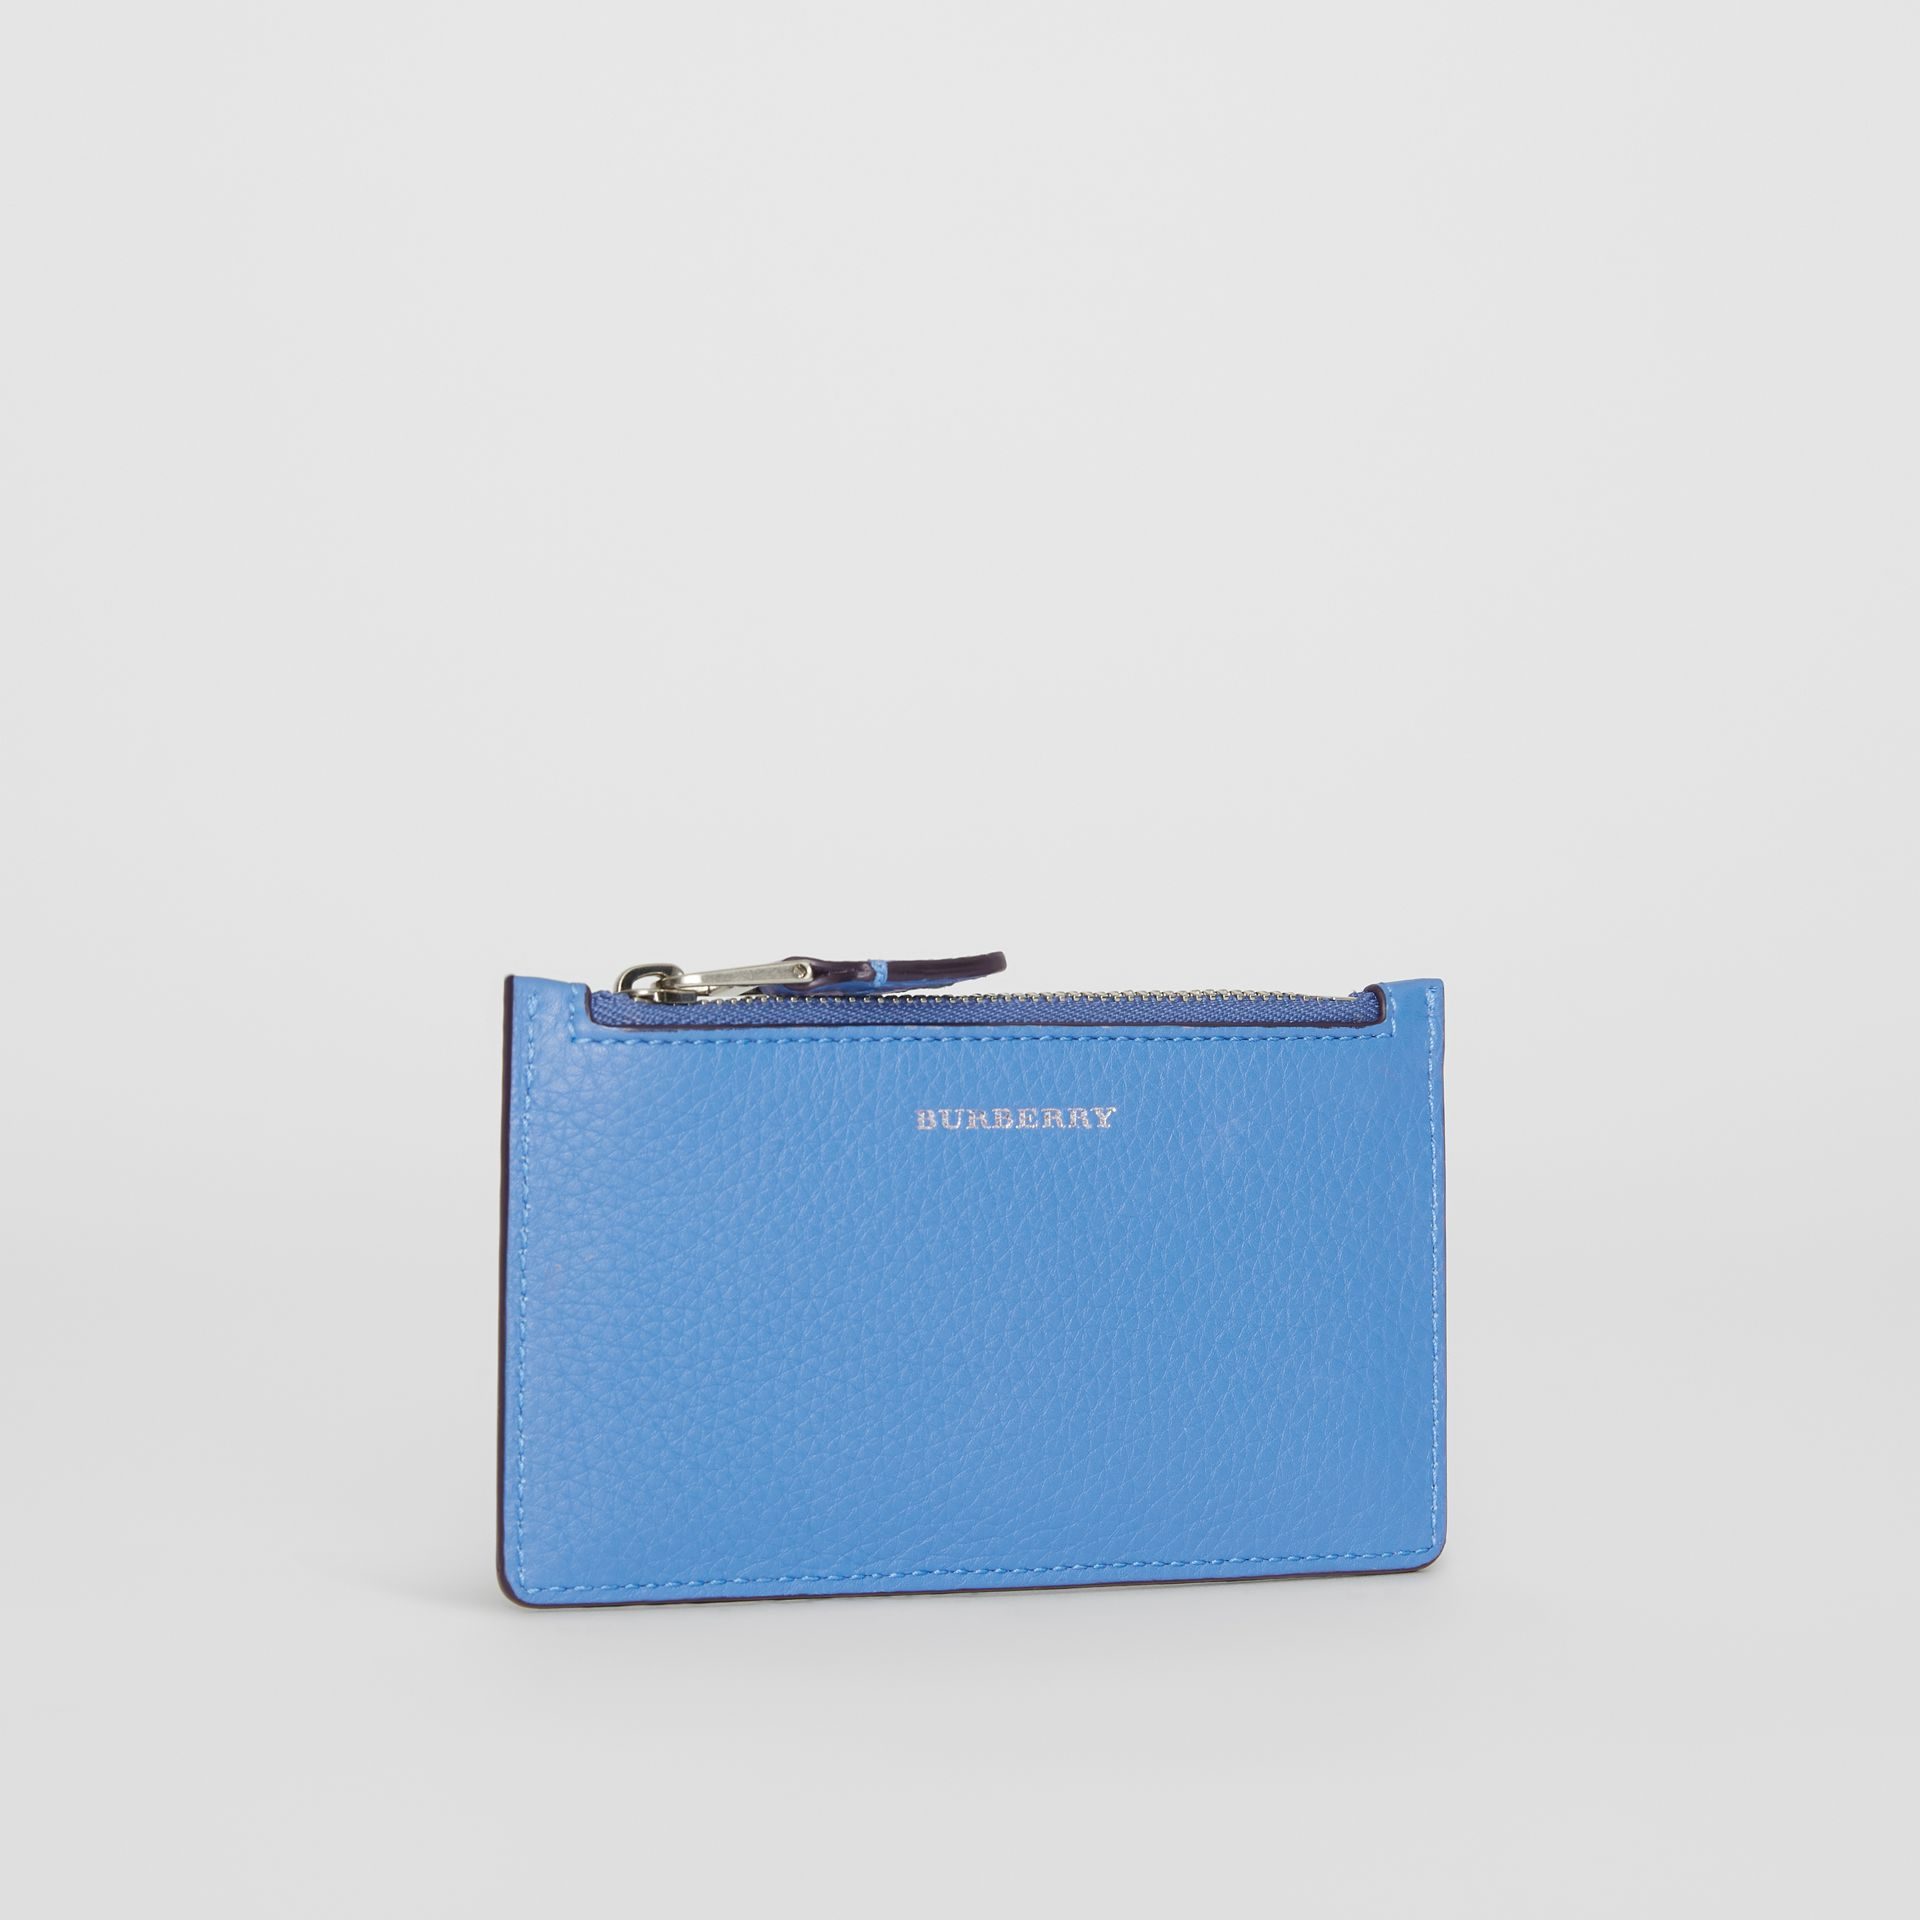 Two-tone Leather Card Case in Hydrangea Blue - Women | Burberry Australia - gallery image 4